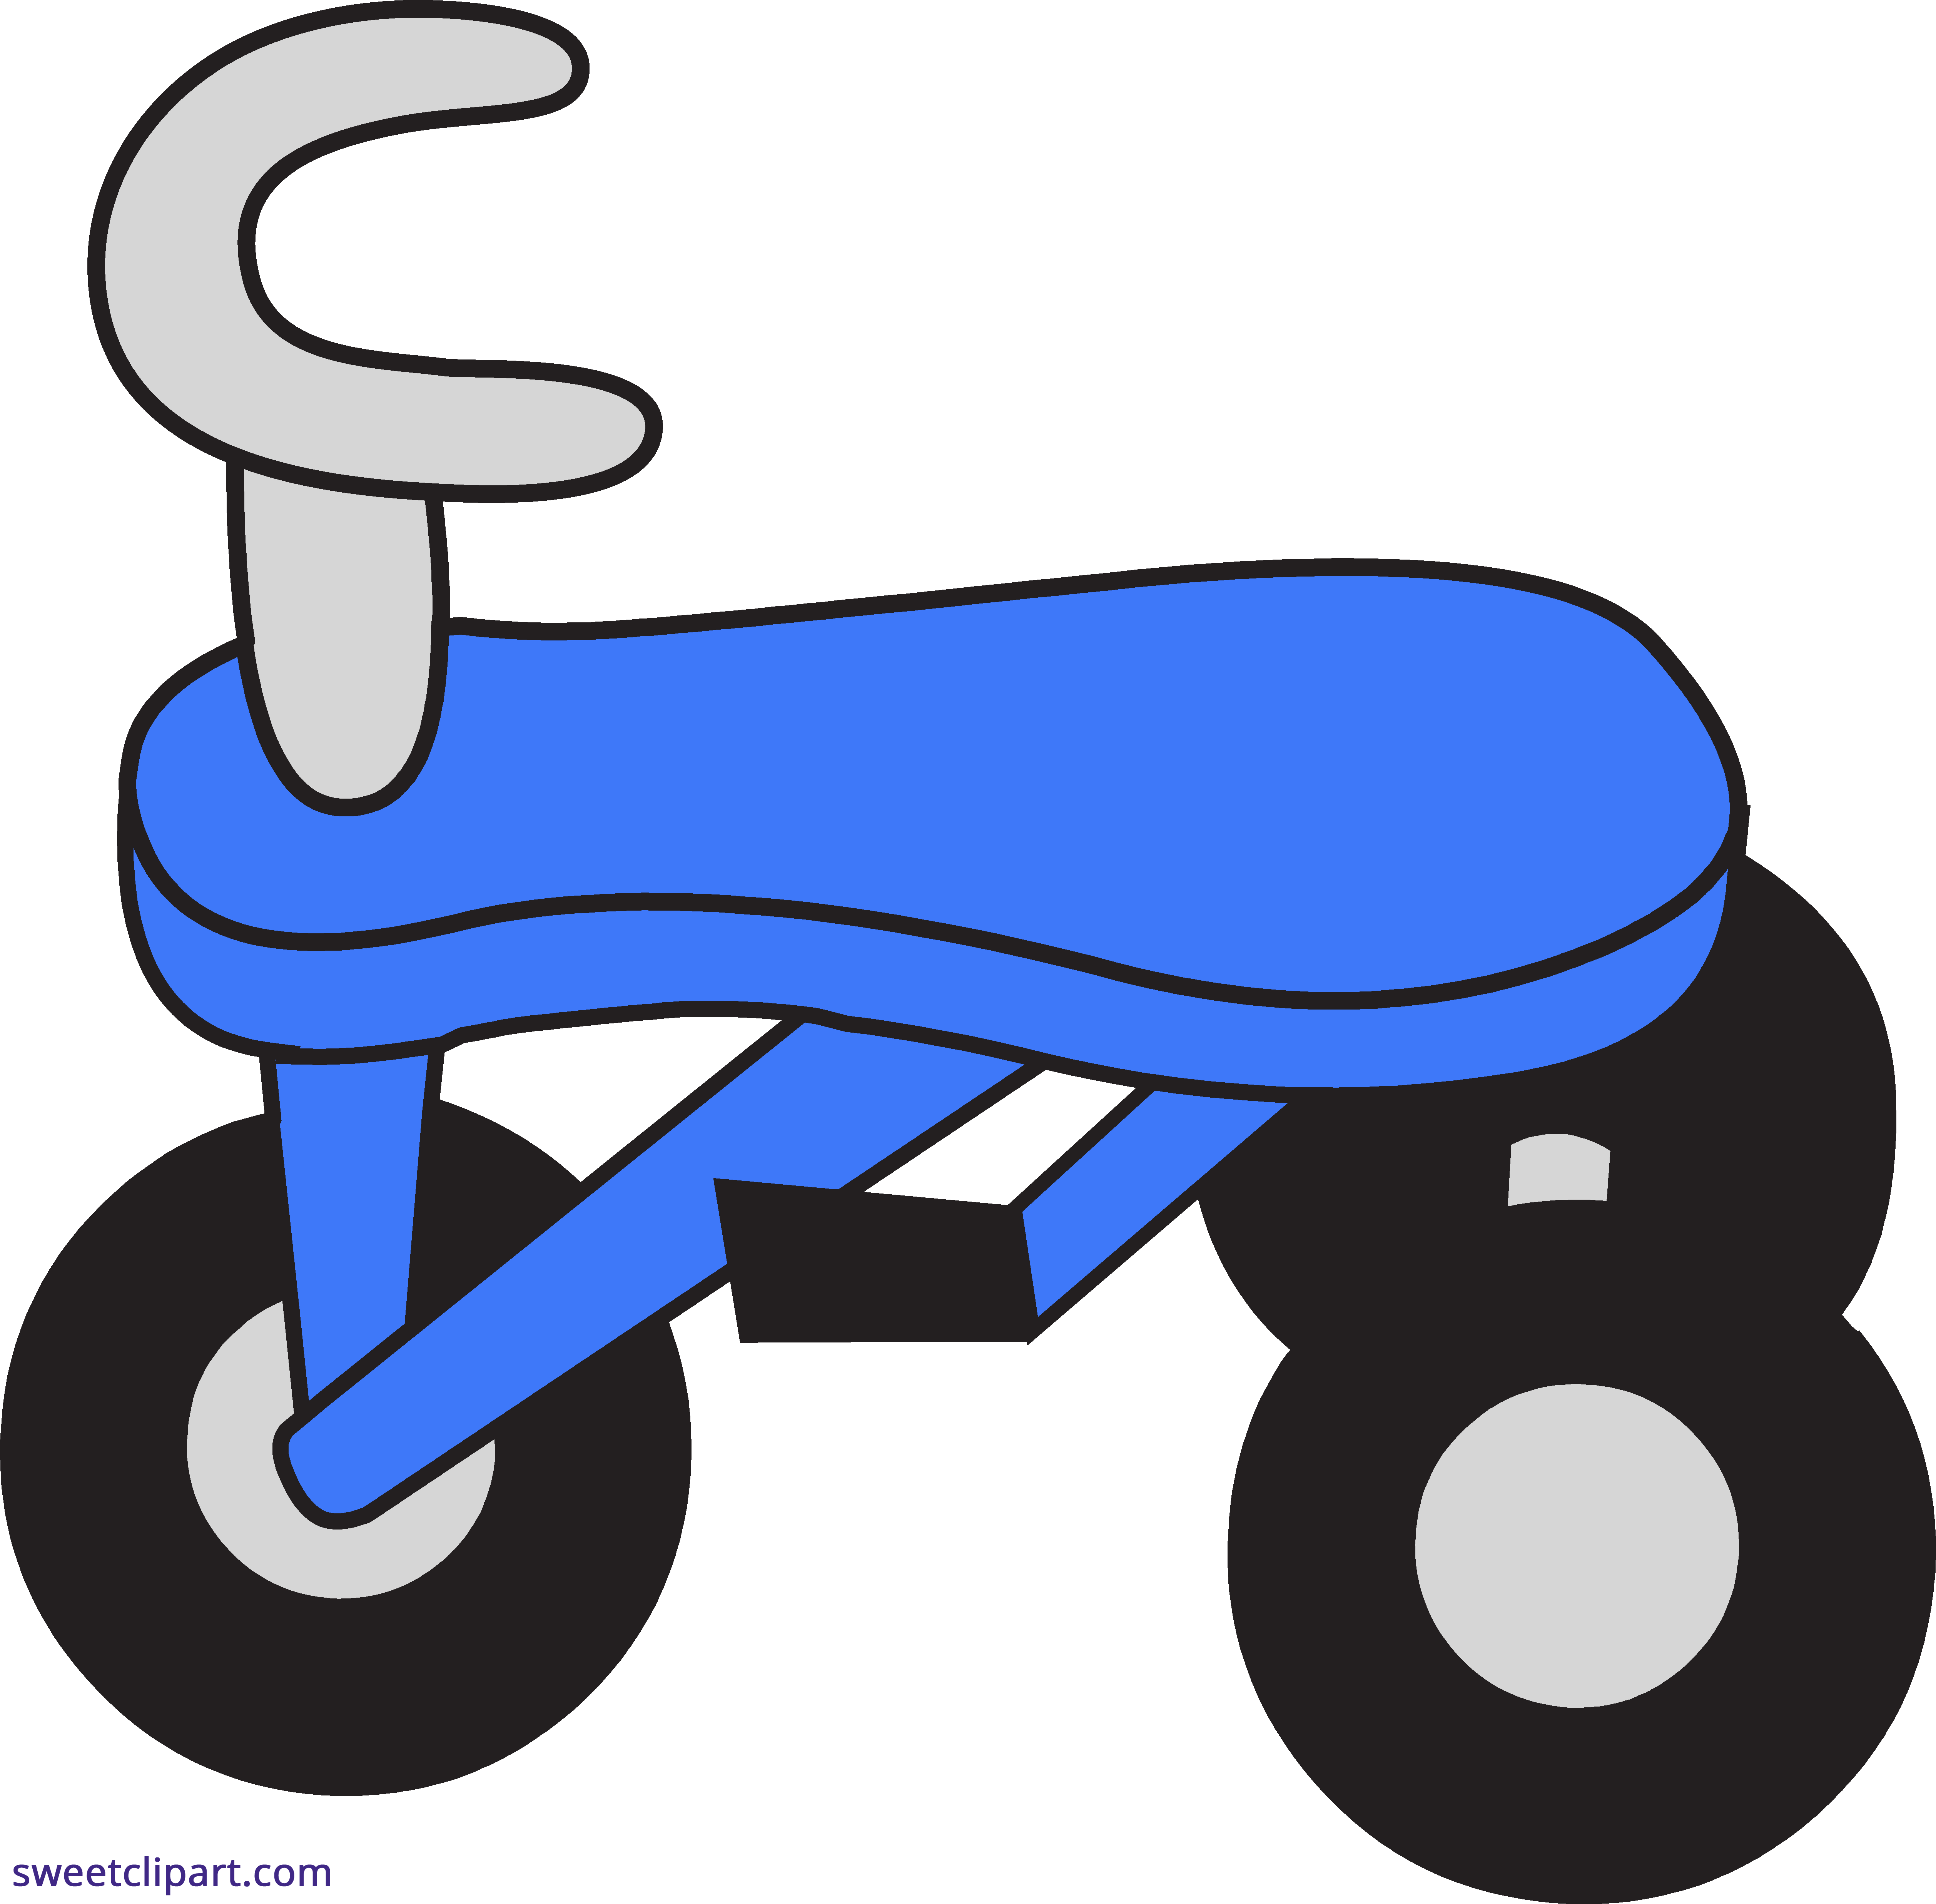 svg transparent download Blue sweet clip art. Tricycle clipart